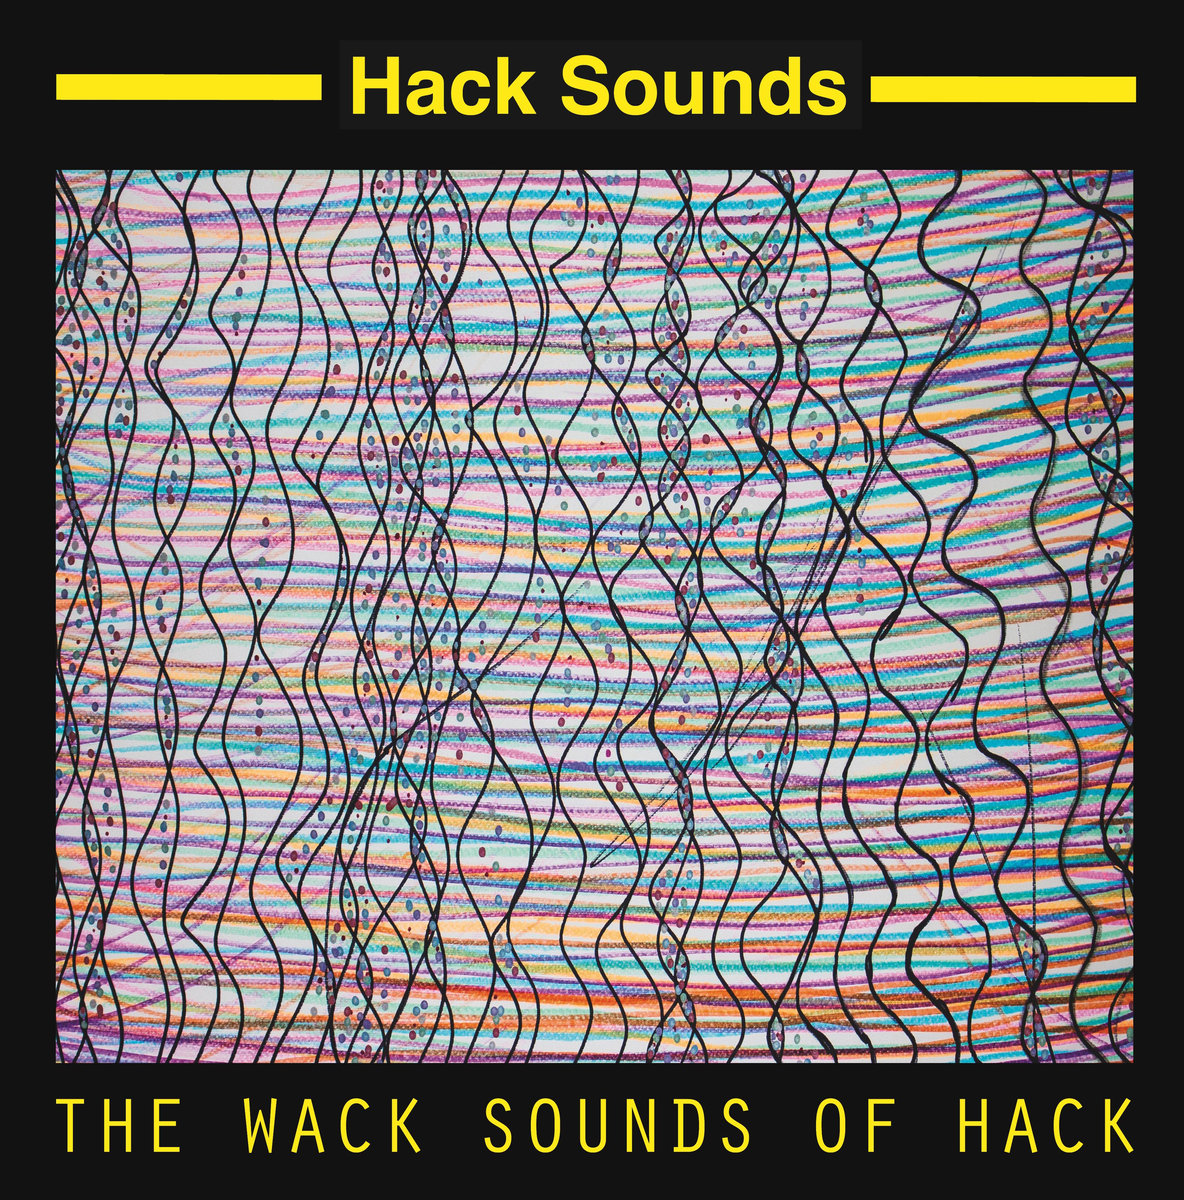 Hack Sounds - The Wack Sounds of Hack